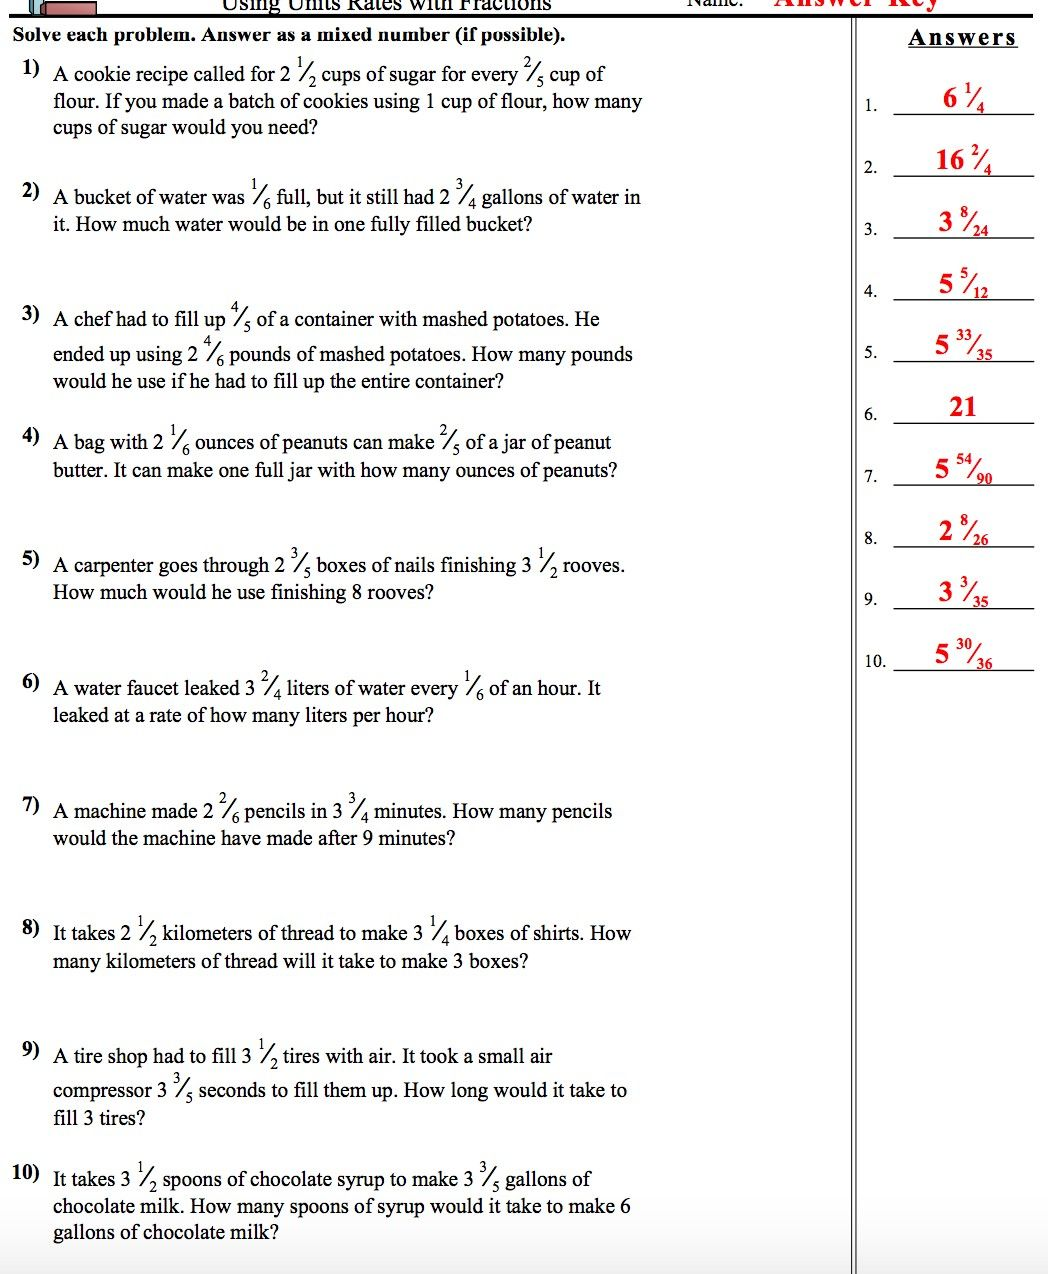 small resolution of https://dubaikhalifas.com/pin-by-cassie-kennedy-on-7th-grade-compacted-math-common-core-worksheets-fractions-worksheets/